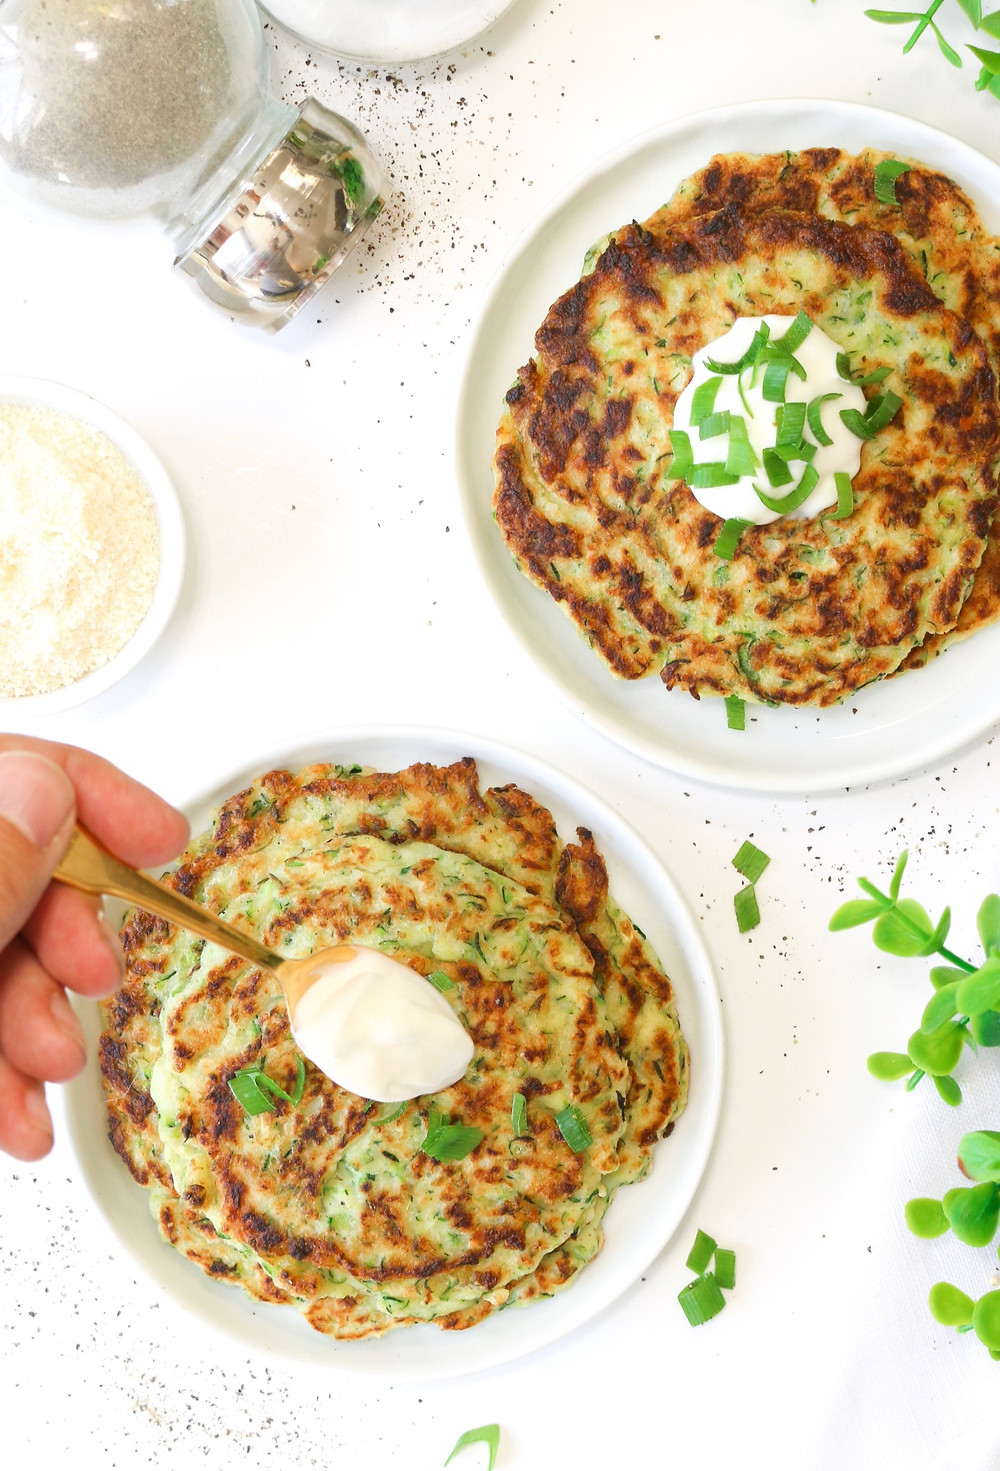 Pan fried gluten-free zucchini fritter with sour cream and green onions